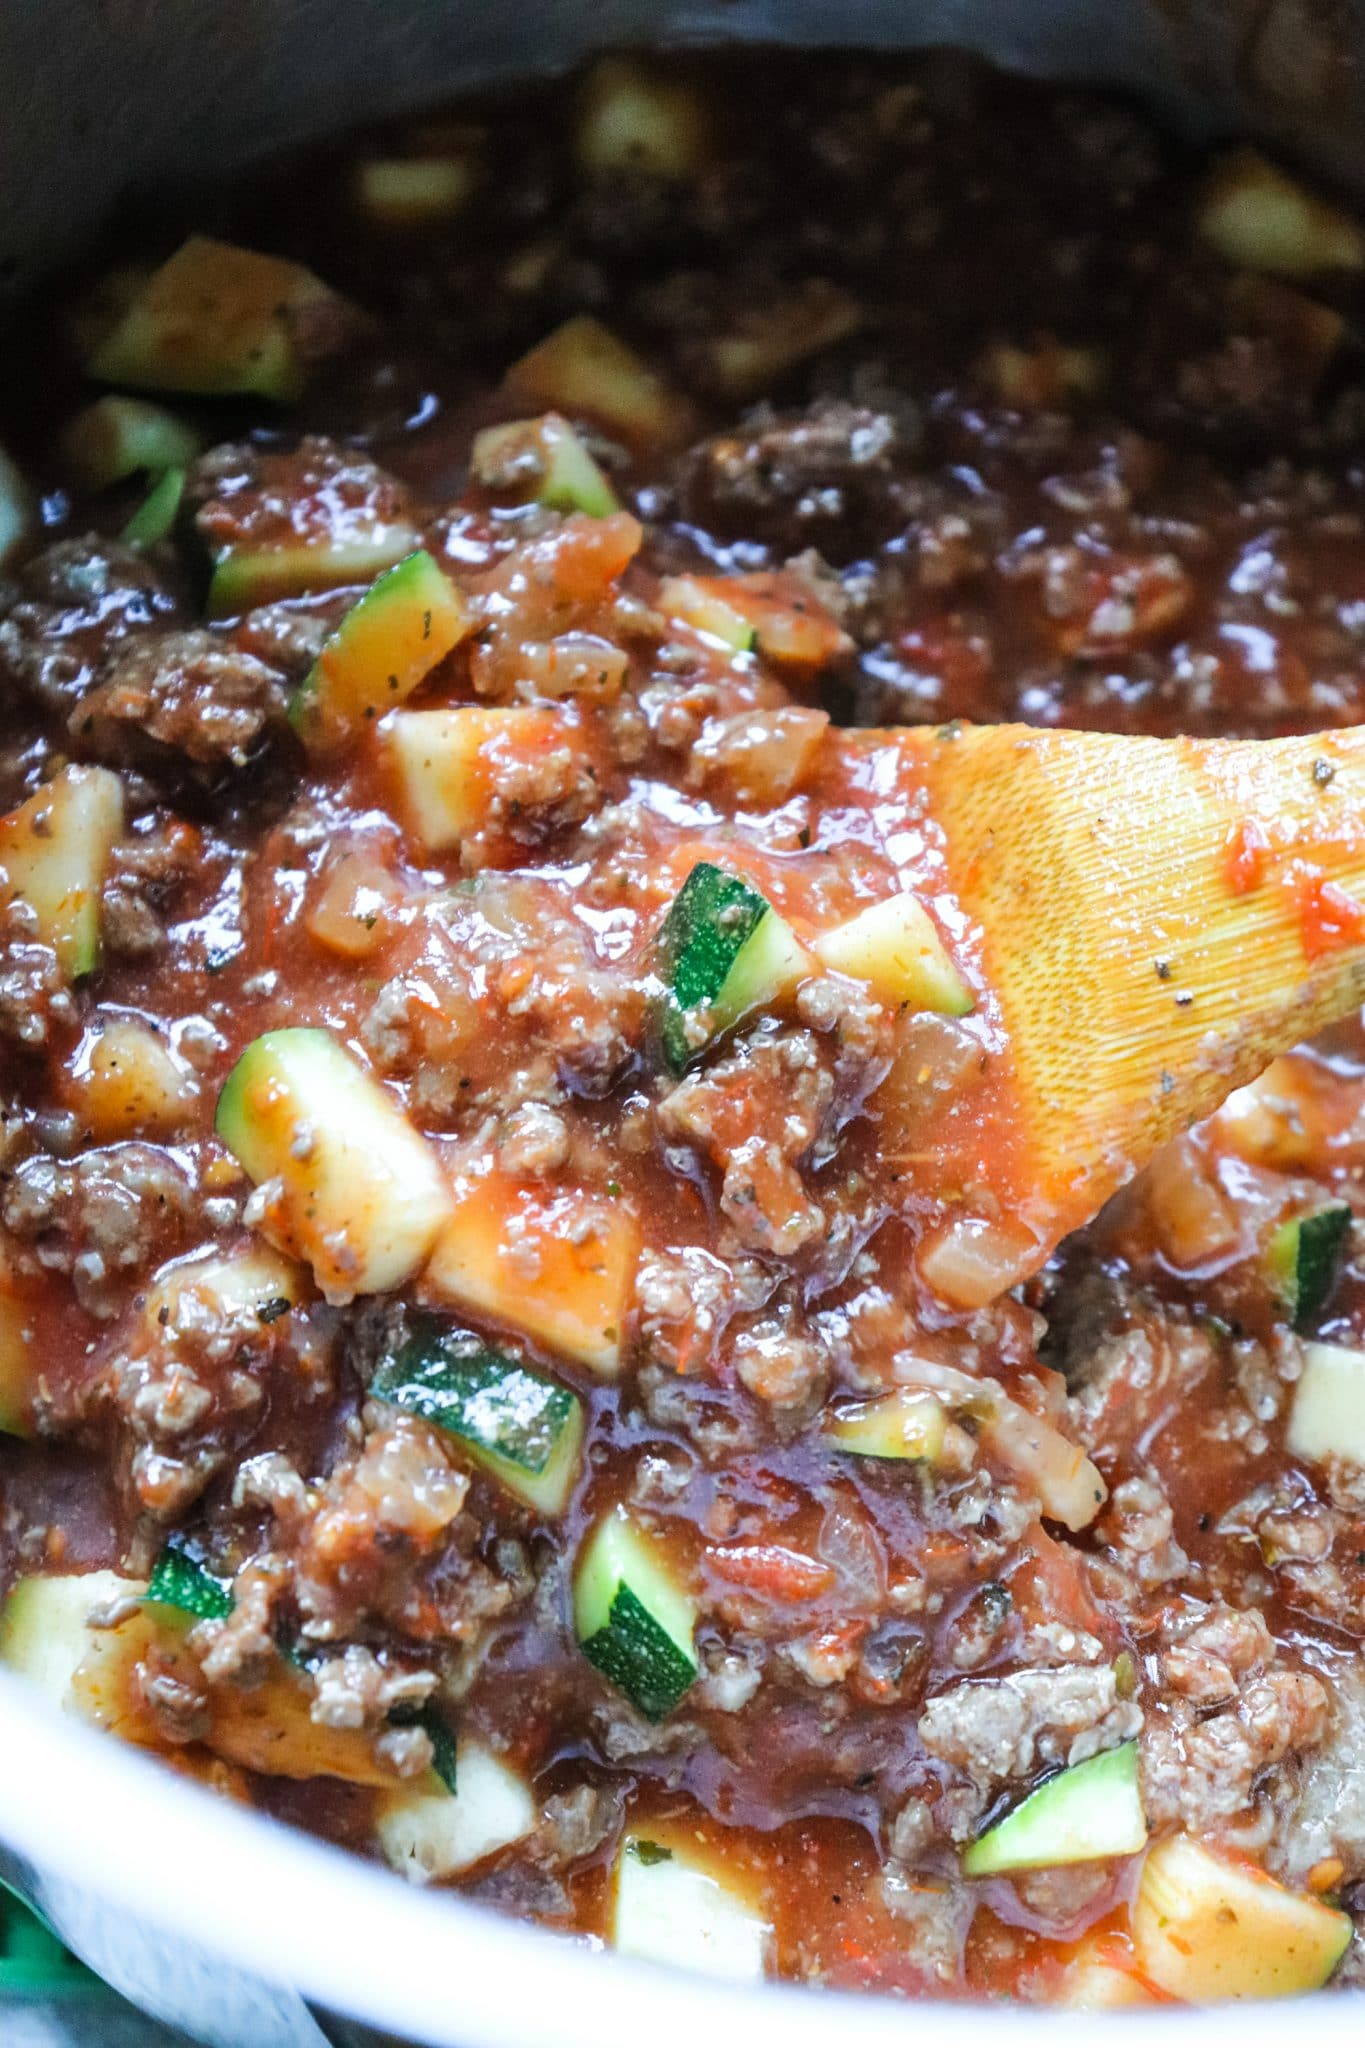 Ground venison, tomato sauce, onion, and zucchini in a large pot being stirred by a wooden spoon